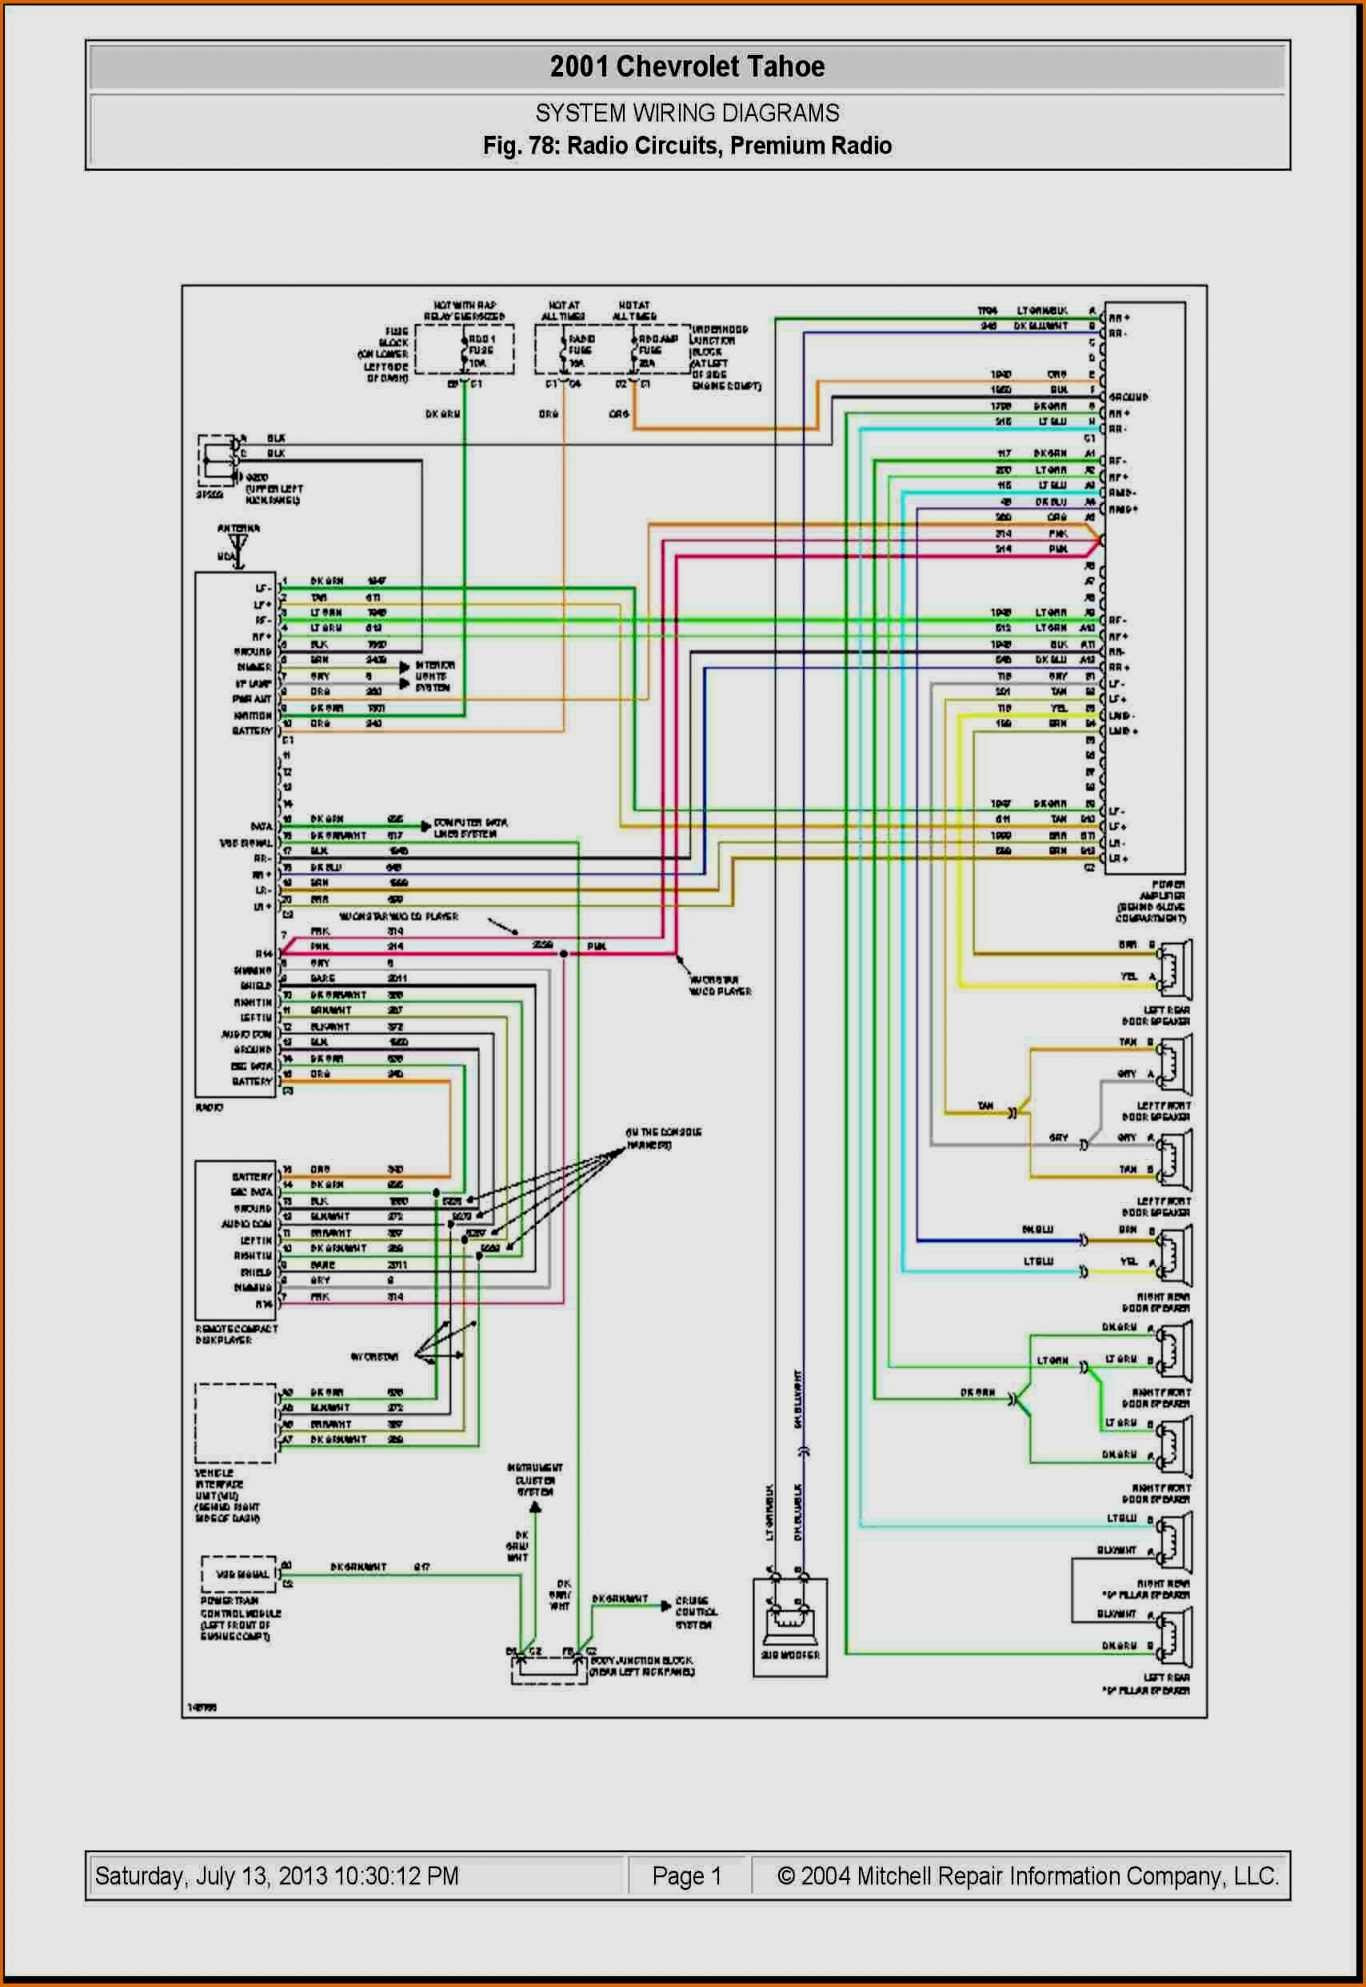 DIAGRAM] Gmc Envoy Radio Wiring Diagram FULL Version HD Quality Wiring  Diagram - EZDIAGRAM.SANITACALABRIA.ITBest Diagram Database - sanitacalabria.it